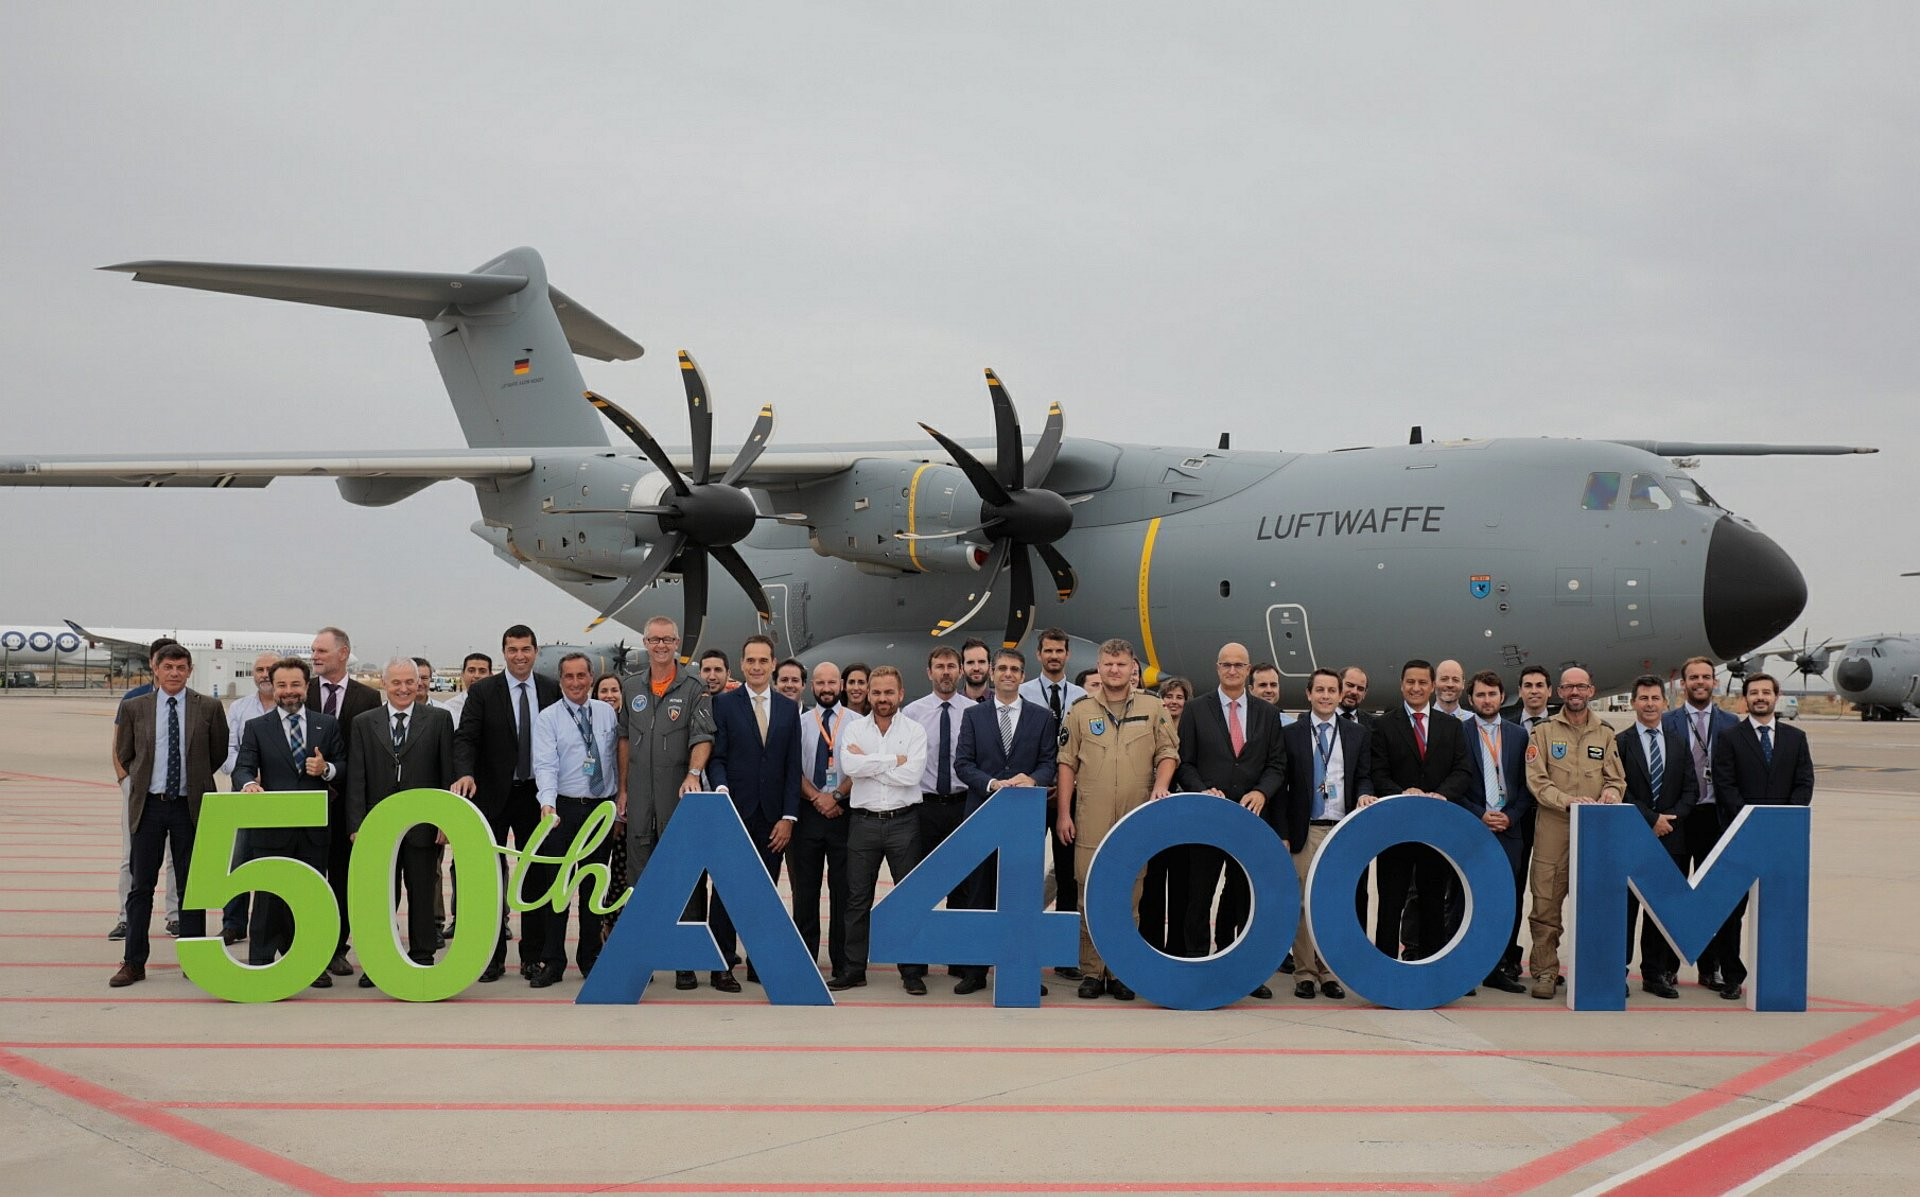 Airbus Defence and Space today delivered the 50th A400M new generation airlifter to the German Air Force marking a key milestone for an aircraft which is transforming the world of air mobility.